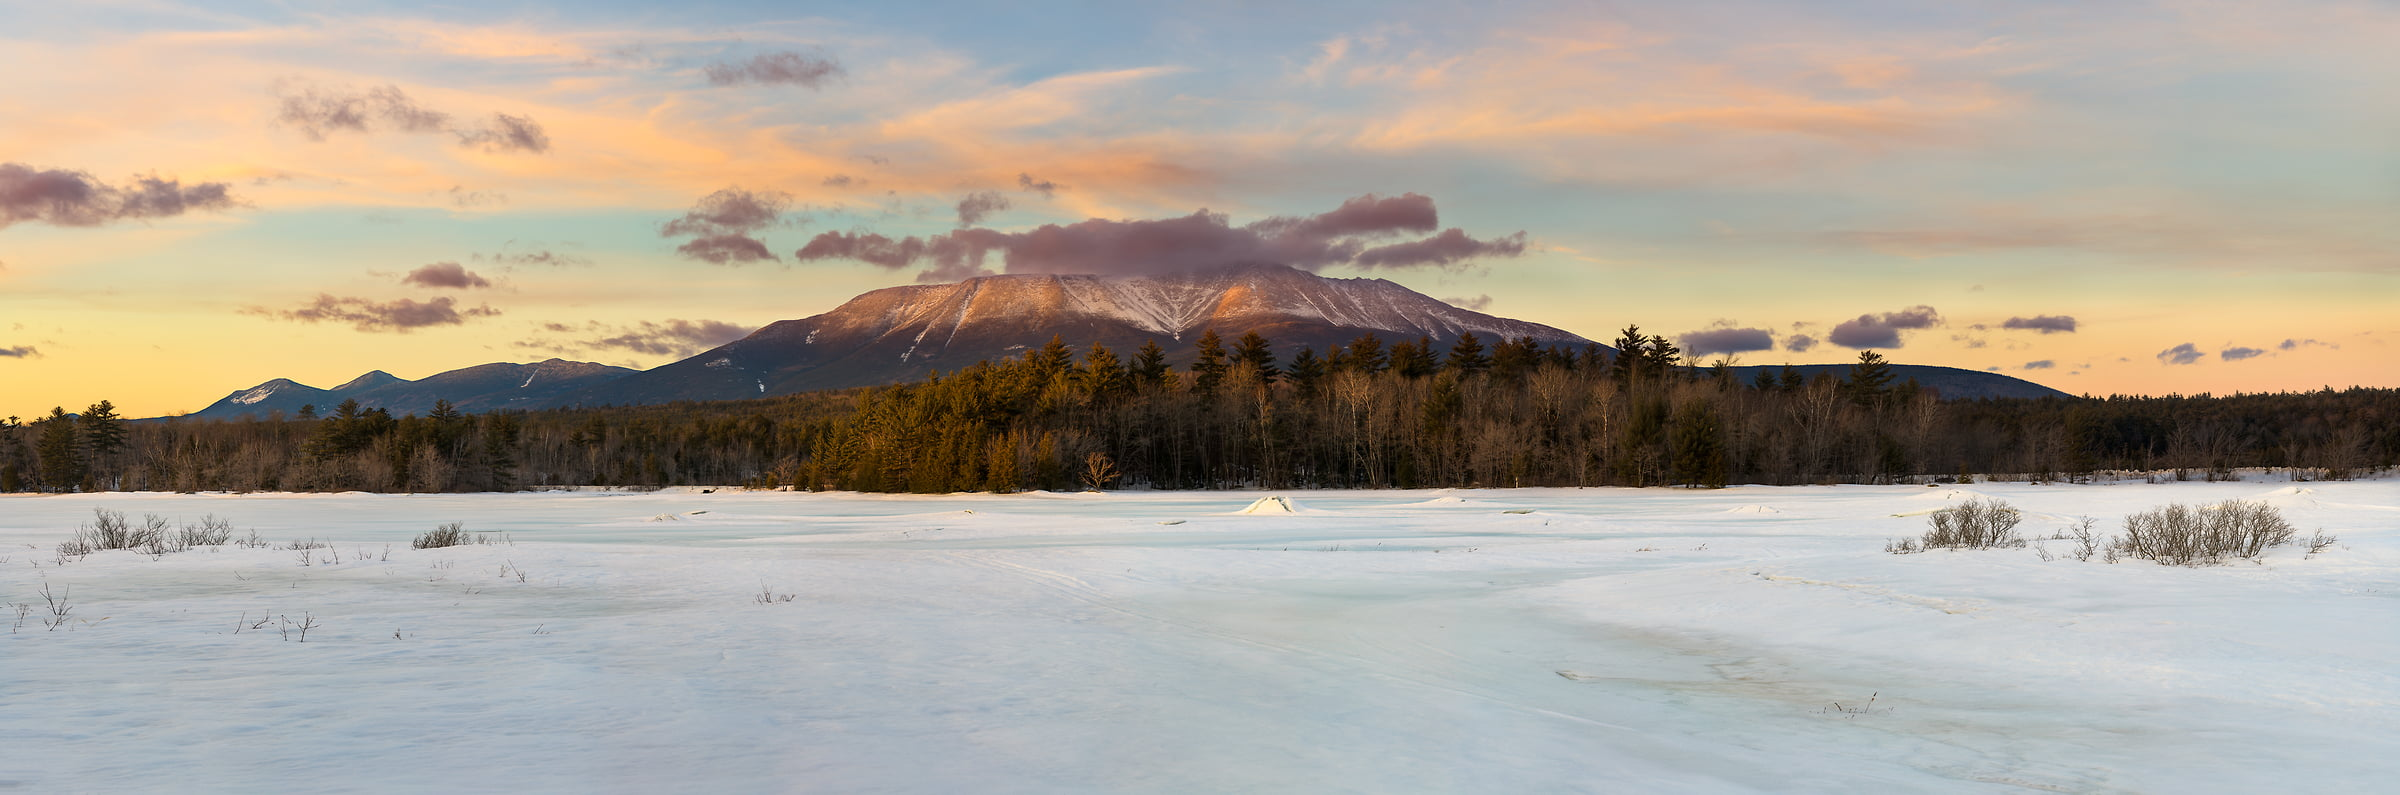 1,310 megapixels! A very high resolution, large-format panorama photo of Mt. Katahdin at sunset during winter; fine art landscape photograph created by Aaron Priest at River Pond, Millinocket, Maine